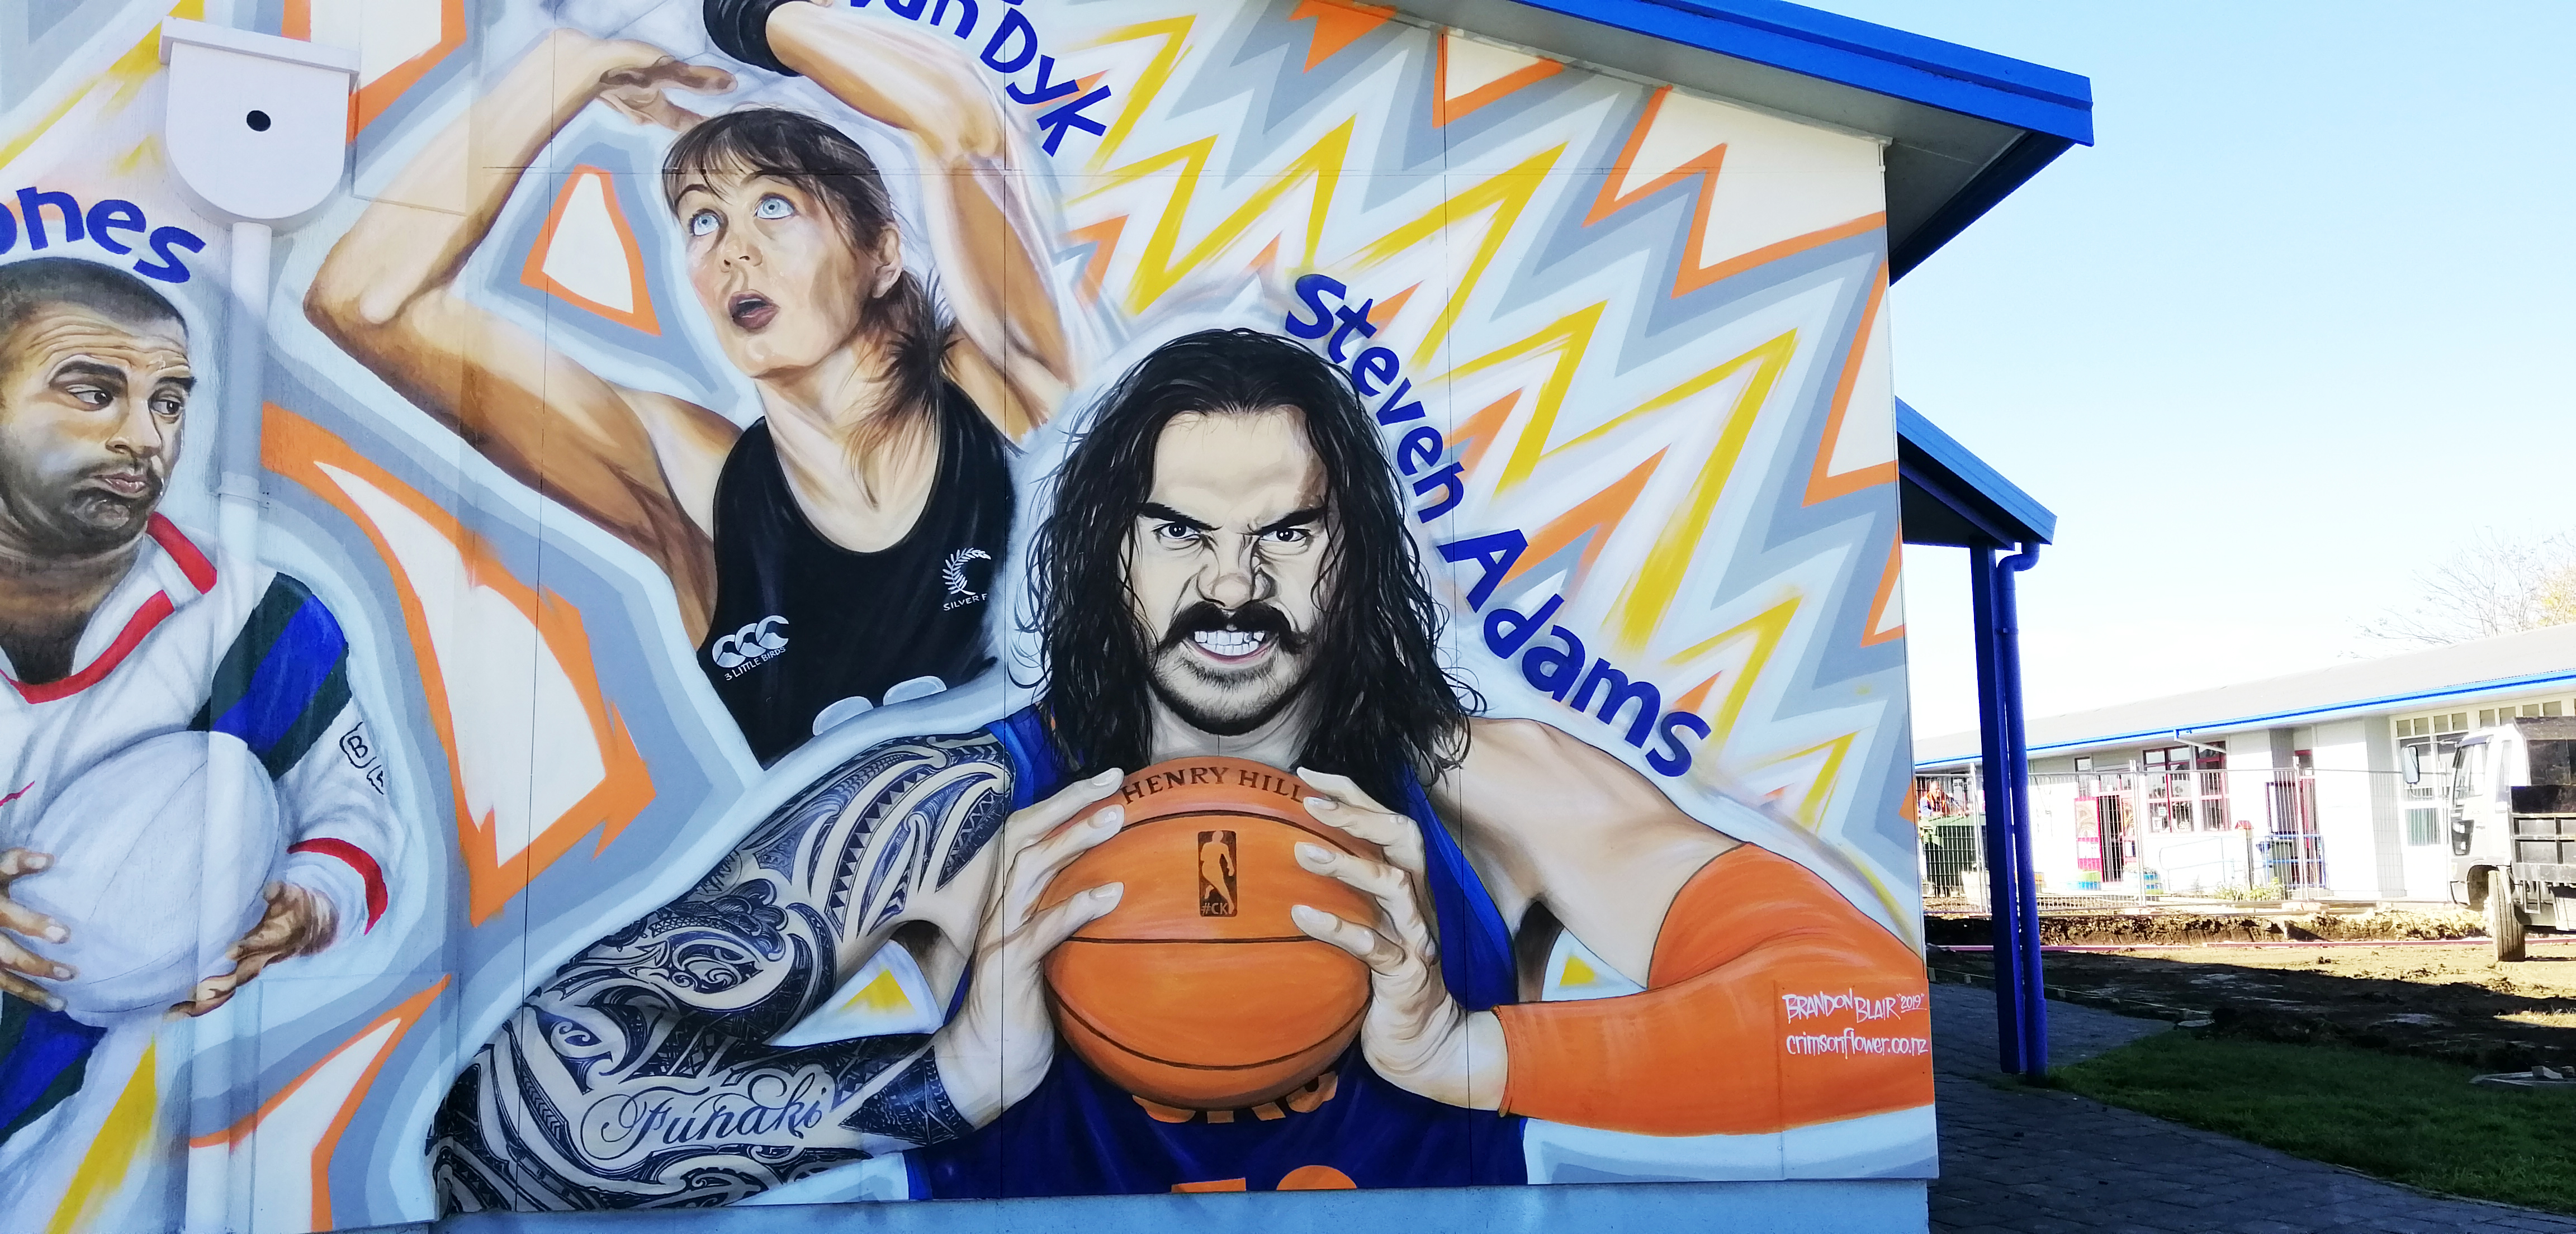 steven adams finished